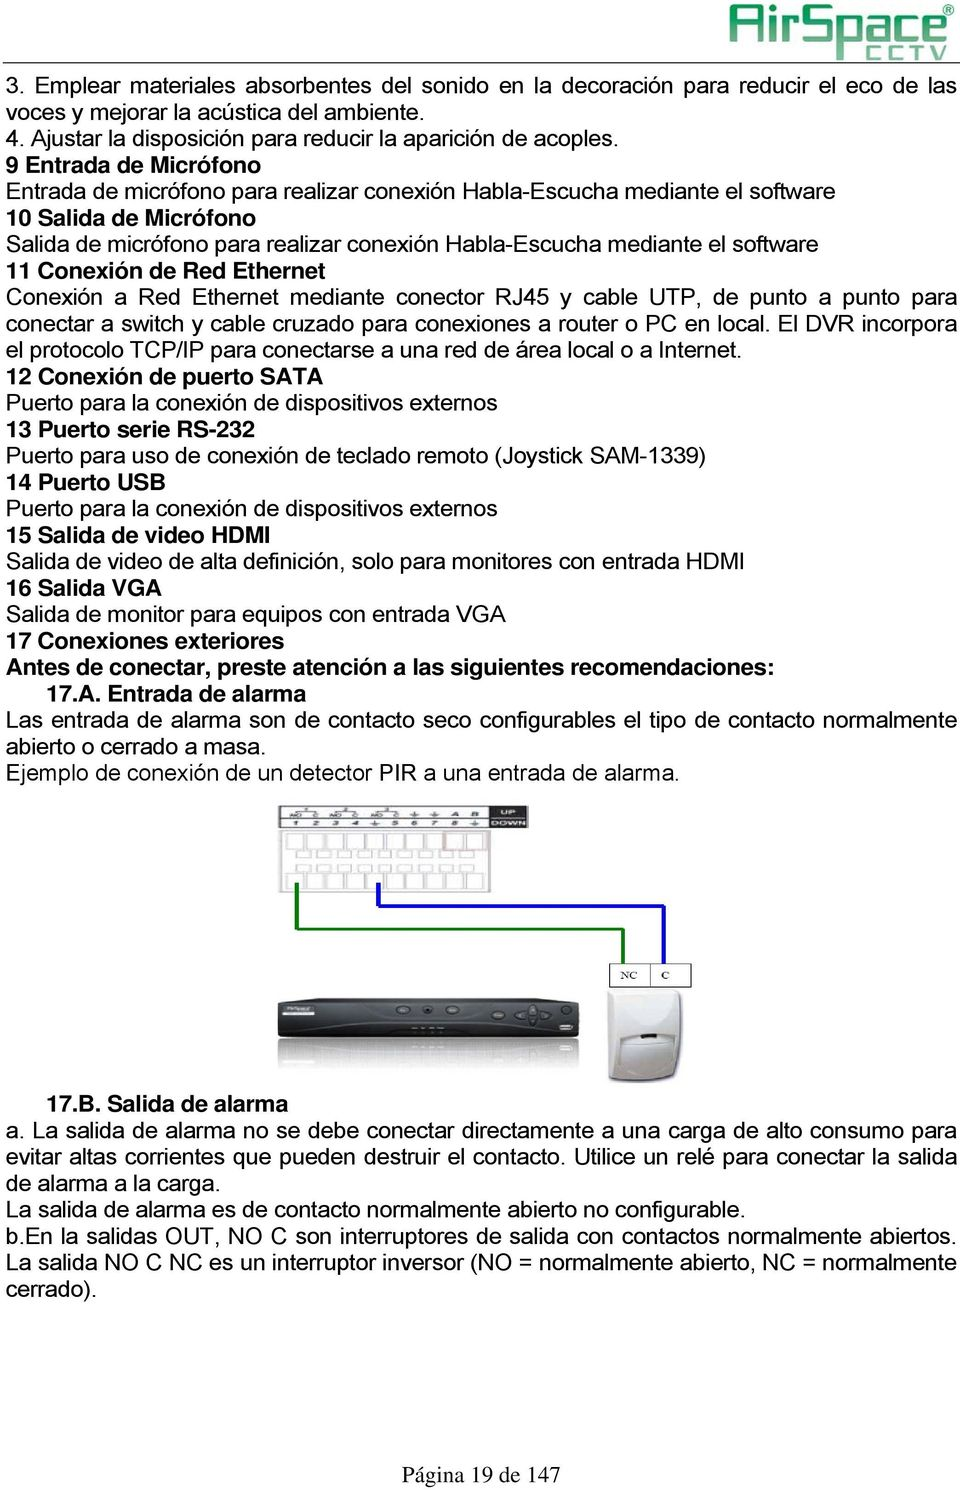 software 11 Conexión de Red Ethernet Conexión a Red Ethernet mediante conector RJ45 y cable UTP, de punto a punto para conectar a switch y cable cruzado para conexiones a router o PC en local.